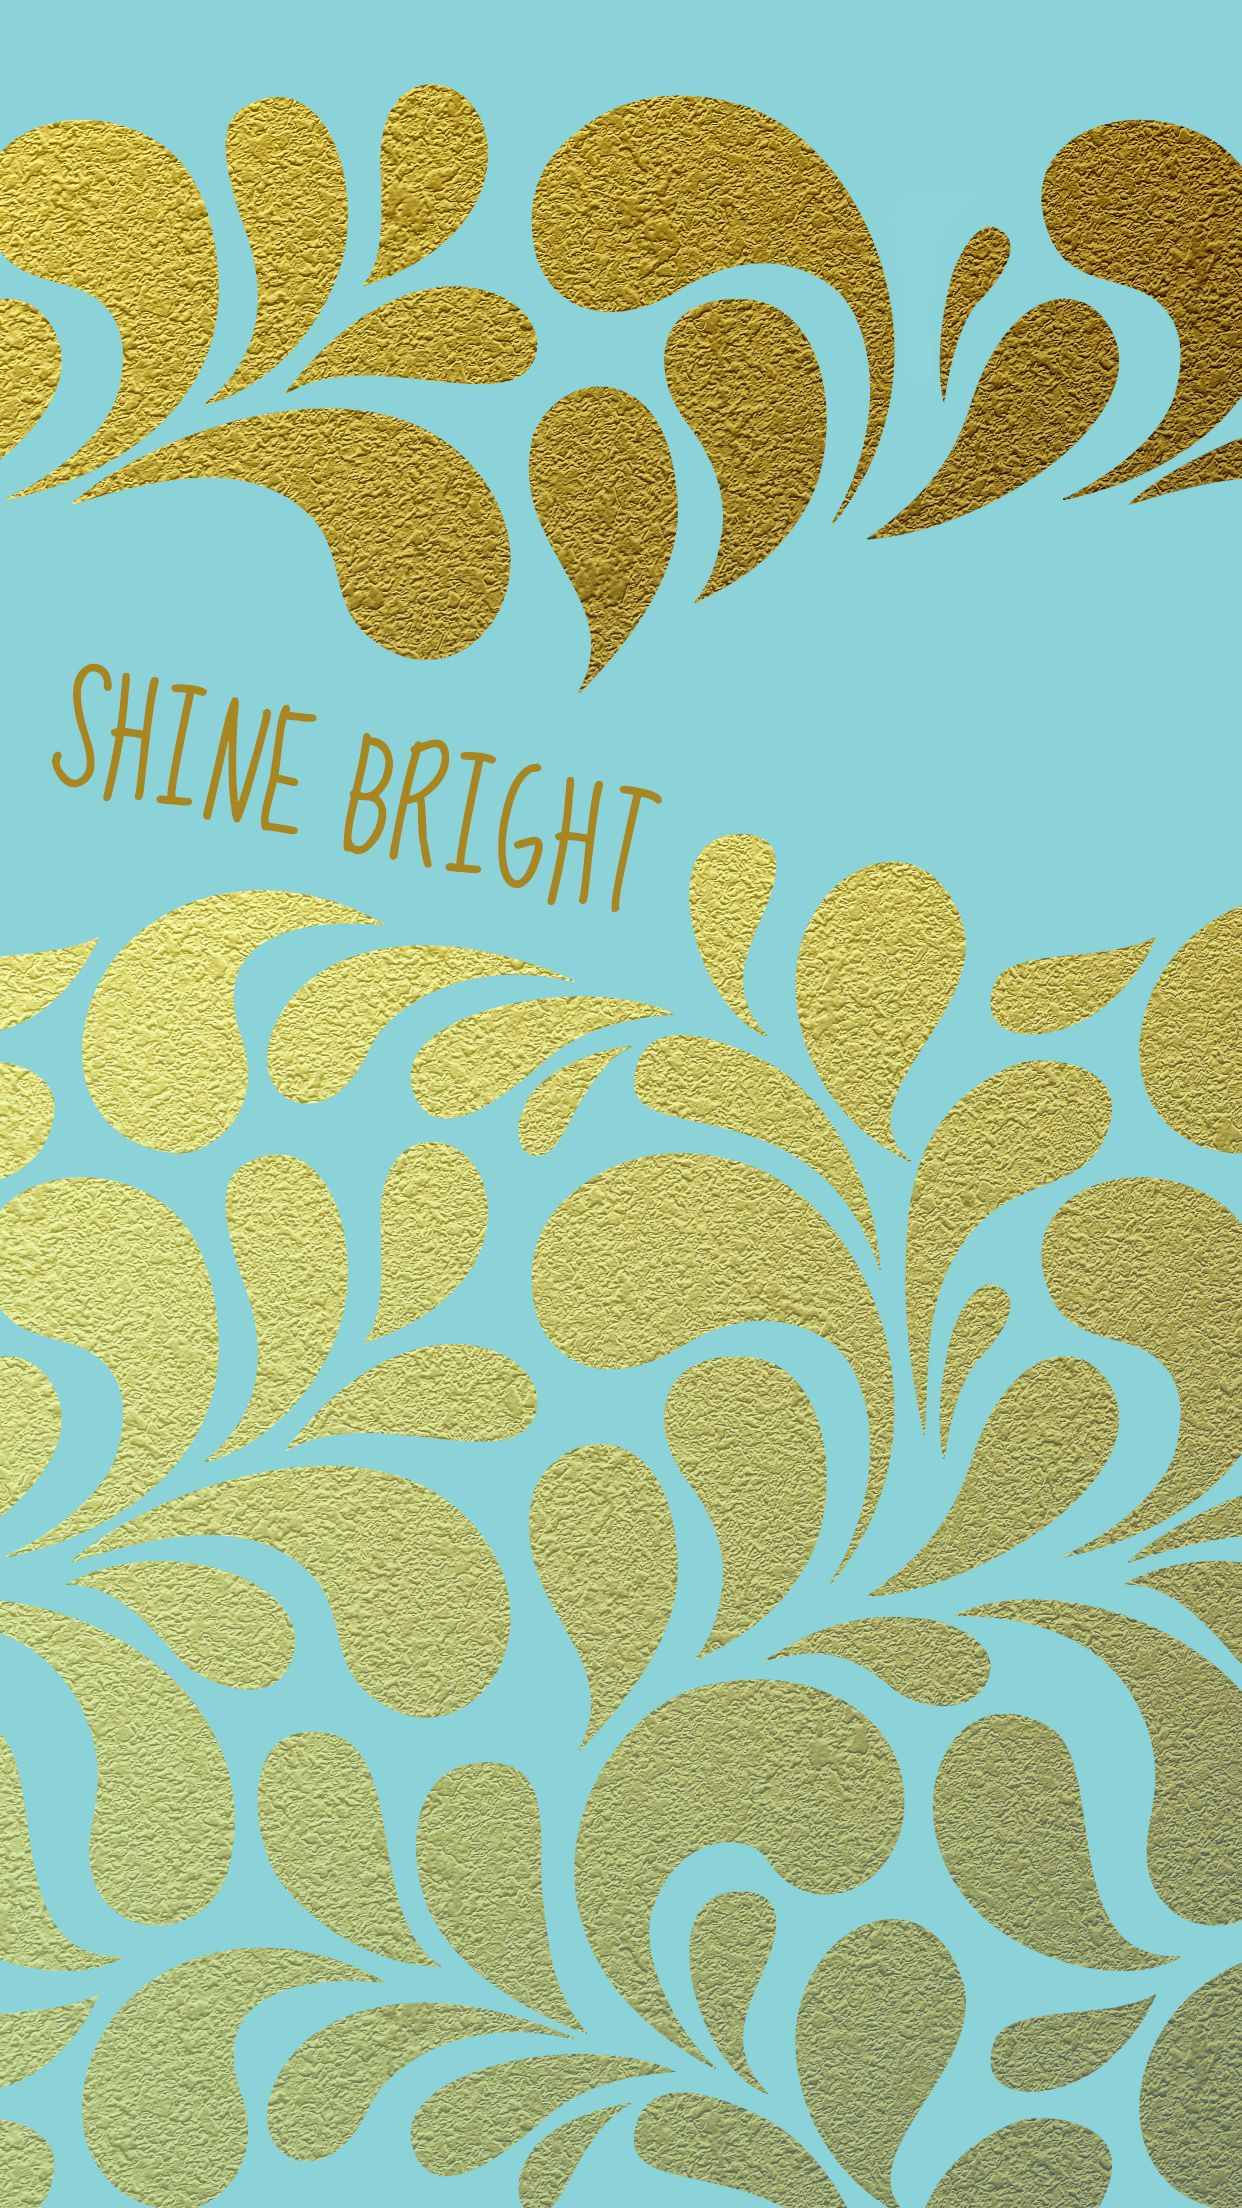 Shine Bright Tiffany Blue Gold Iphone Wallpaper Background